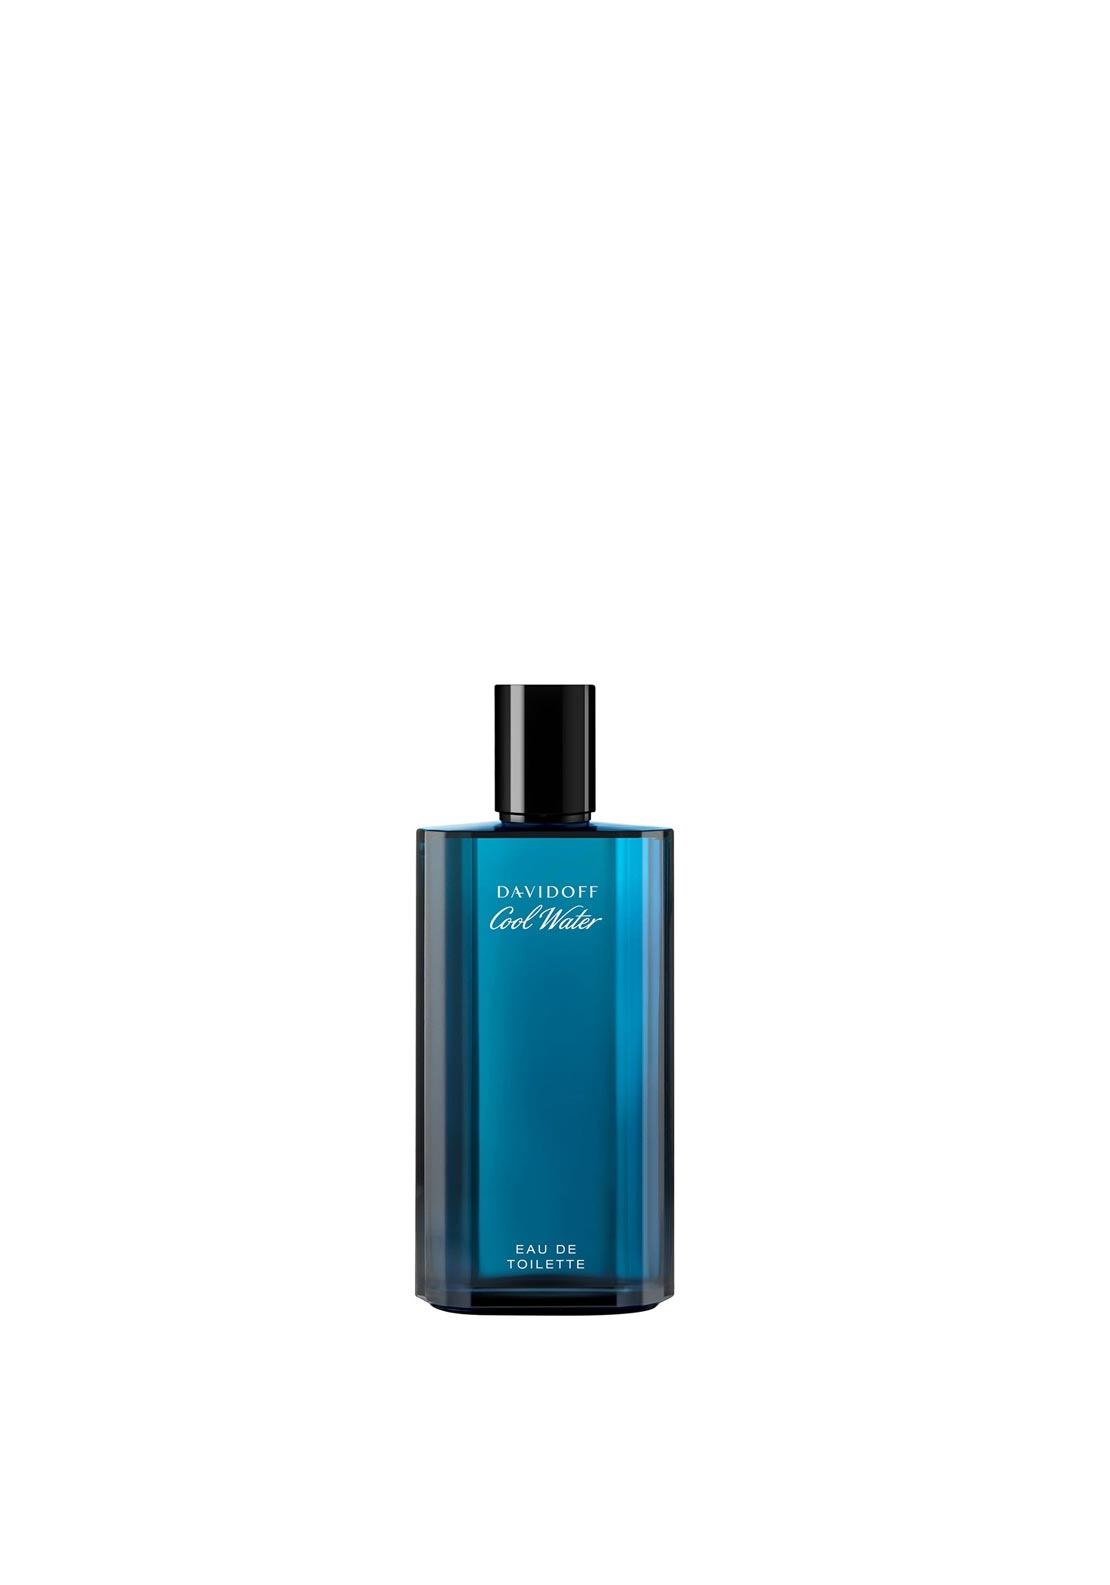 Davidoff Cool Water Eau de Toilette Spray for Him, 75ml